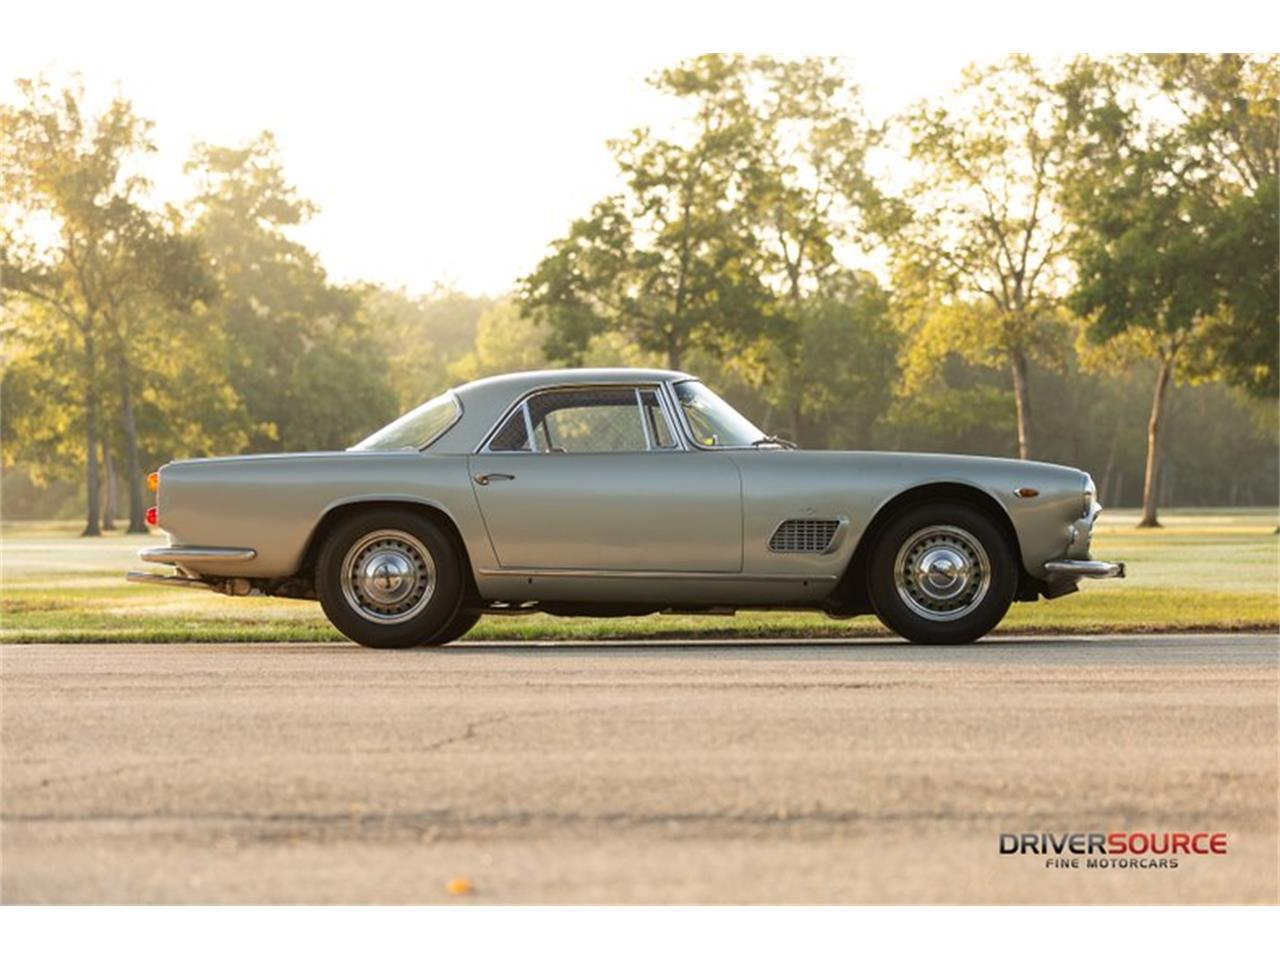 Large Picture of Classic 1962 Maserati 3500 Offered by Driversource - OCR7